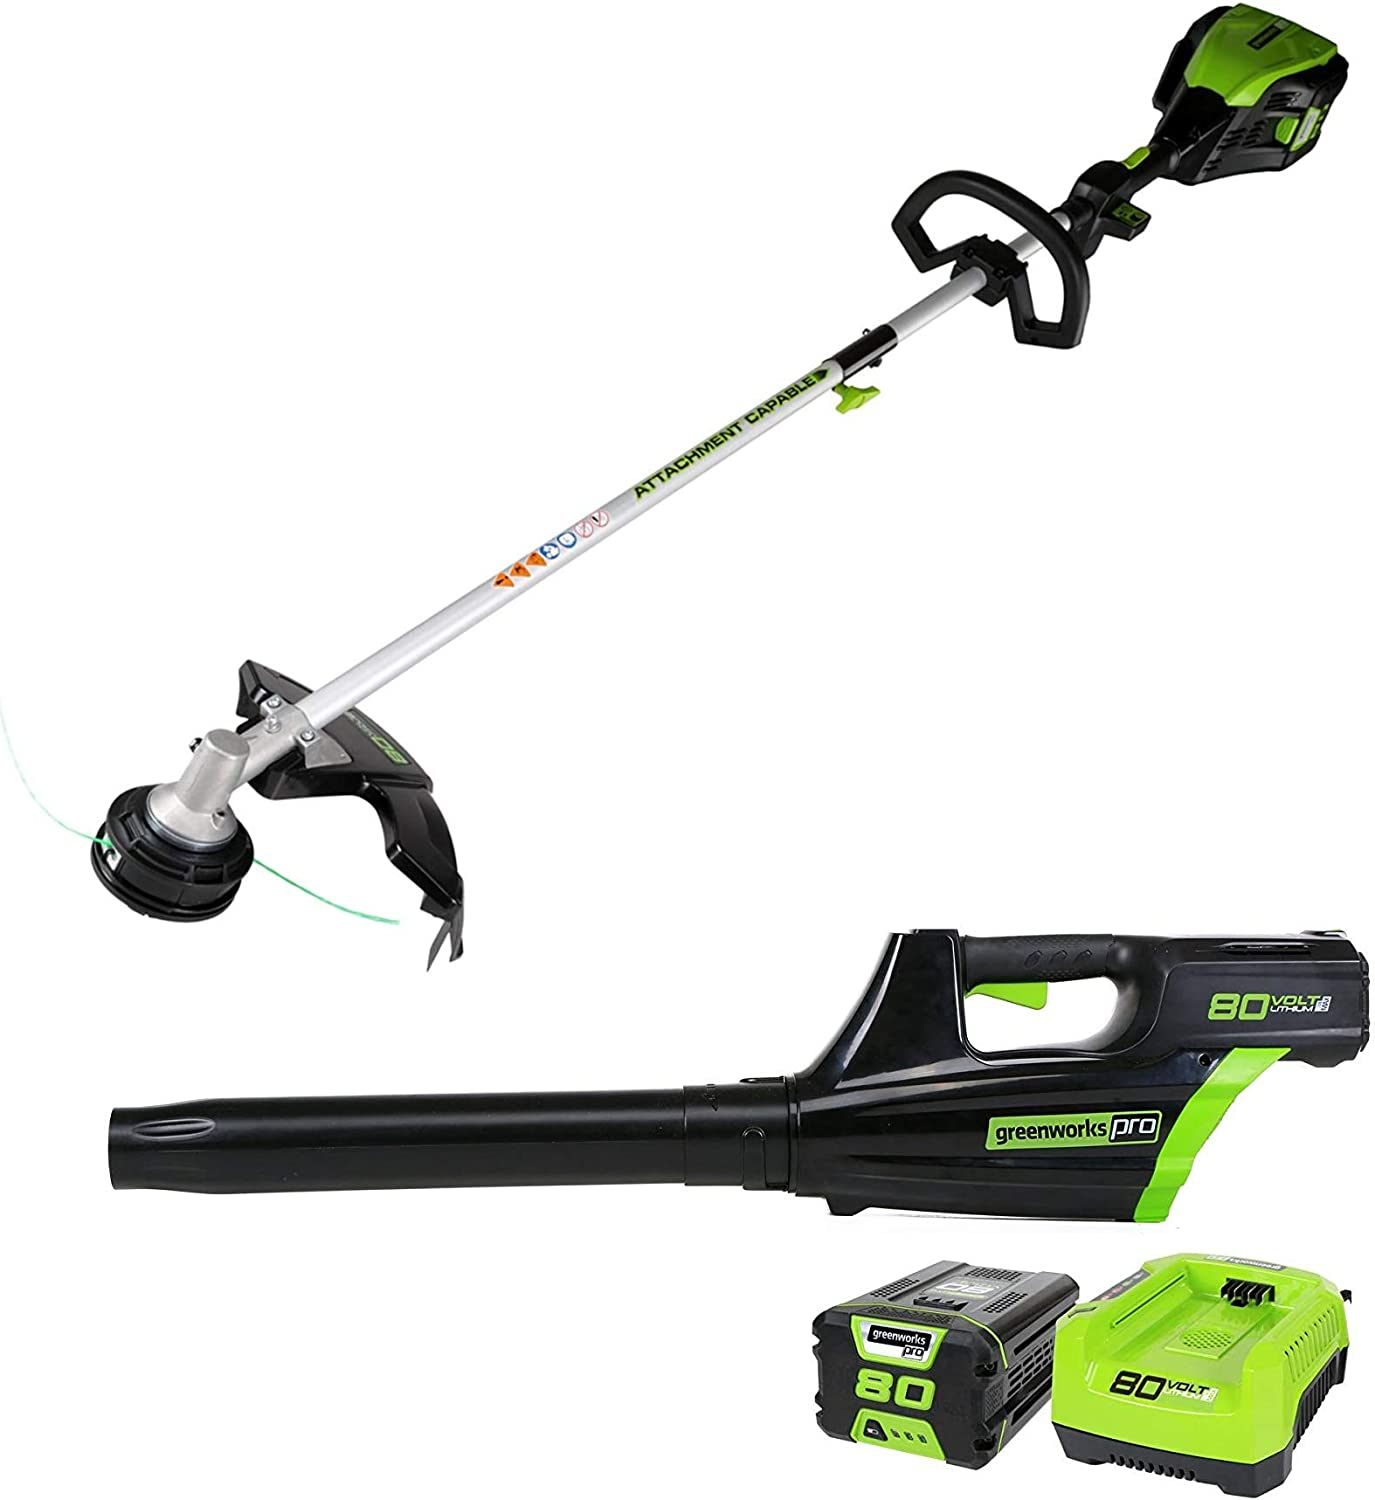 """Greenworks Pro 80V Cordless Brushless 16"""" String Trimmer + Axial Blower Combo Kit, Battery and Rapid Charger Included"""